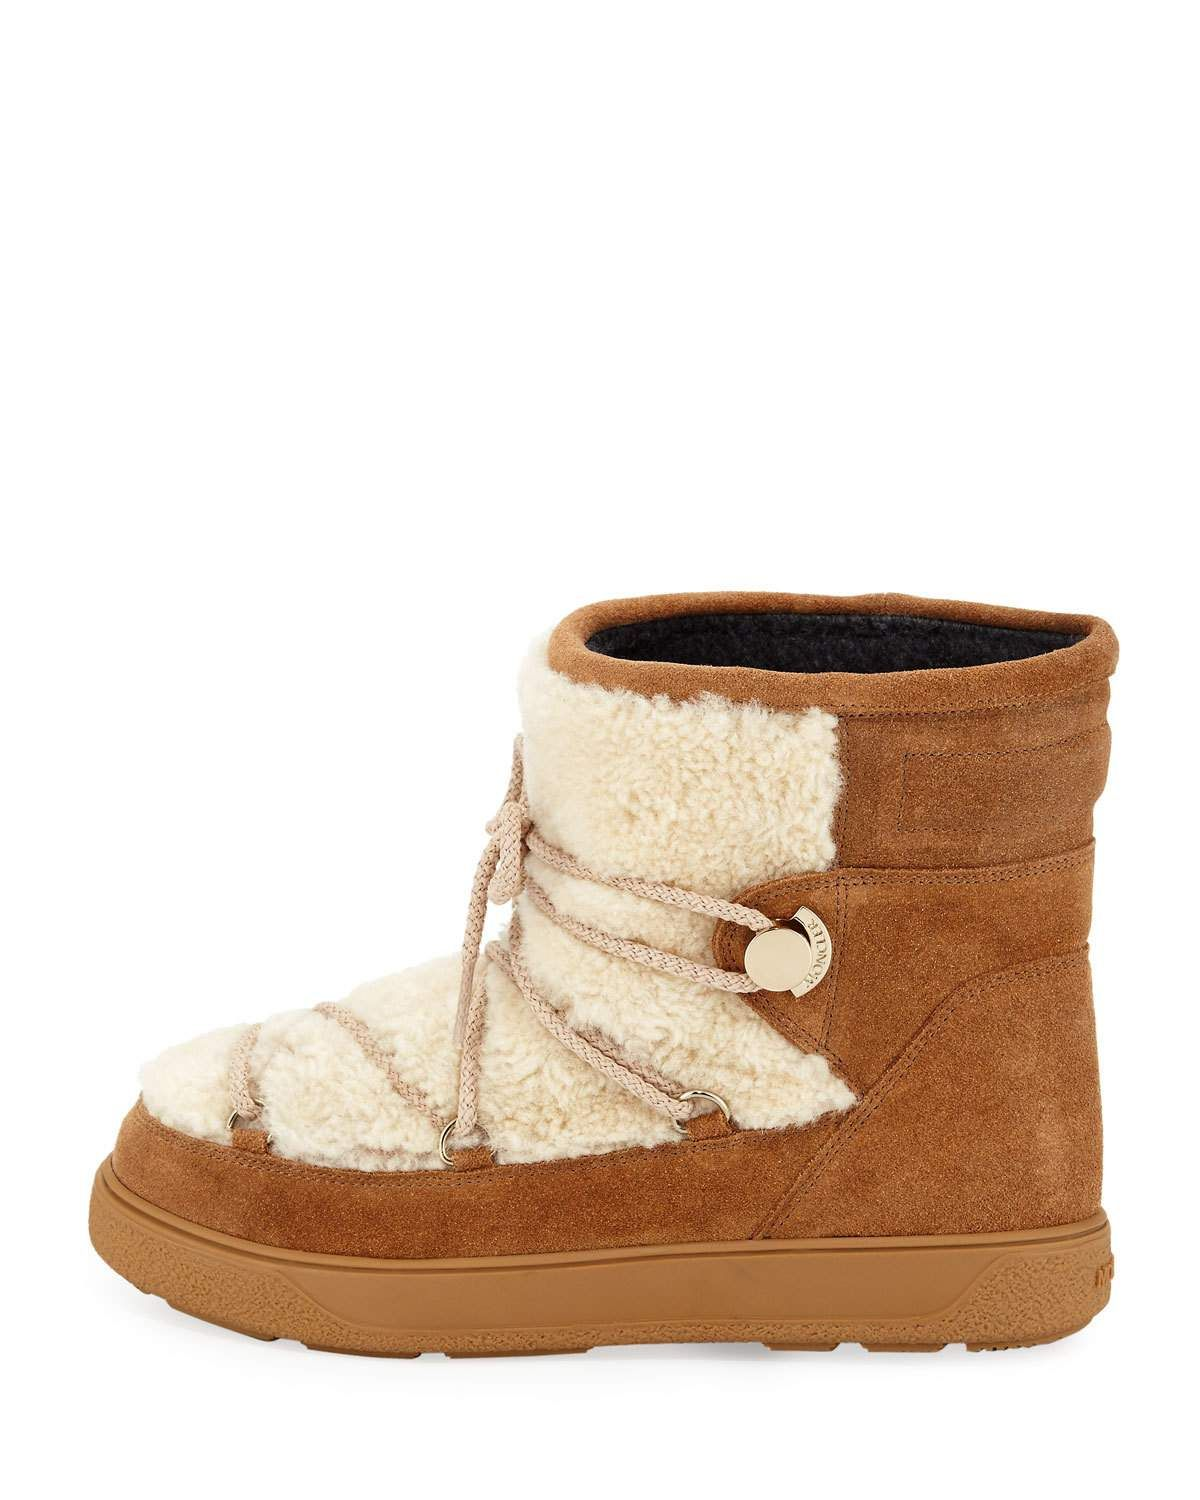 New Fanny Lace Up Shearling Fur Snow Boot | Products | Boots